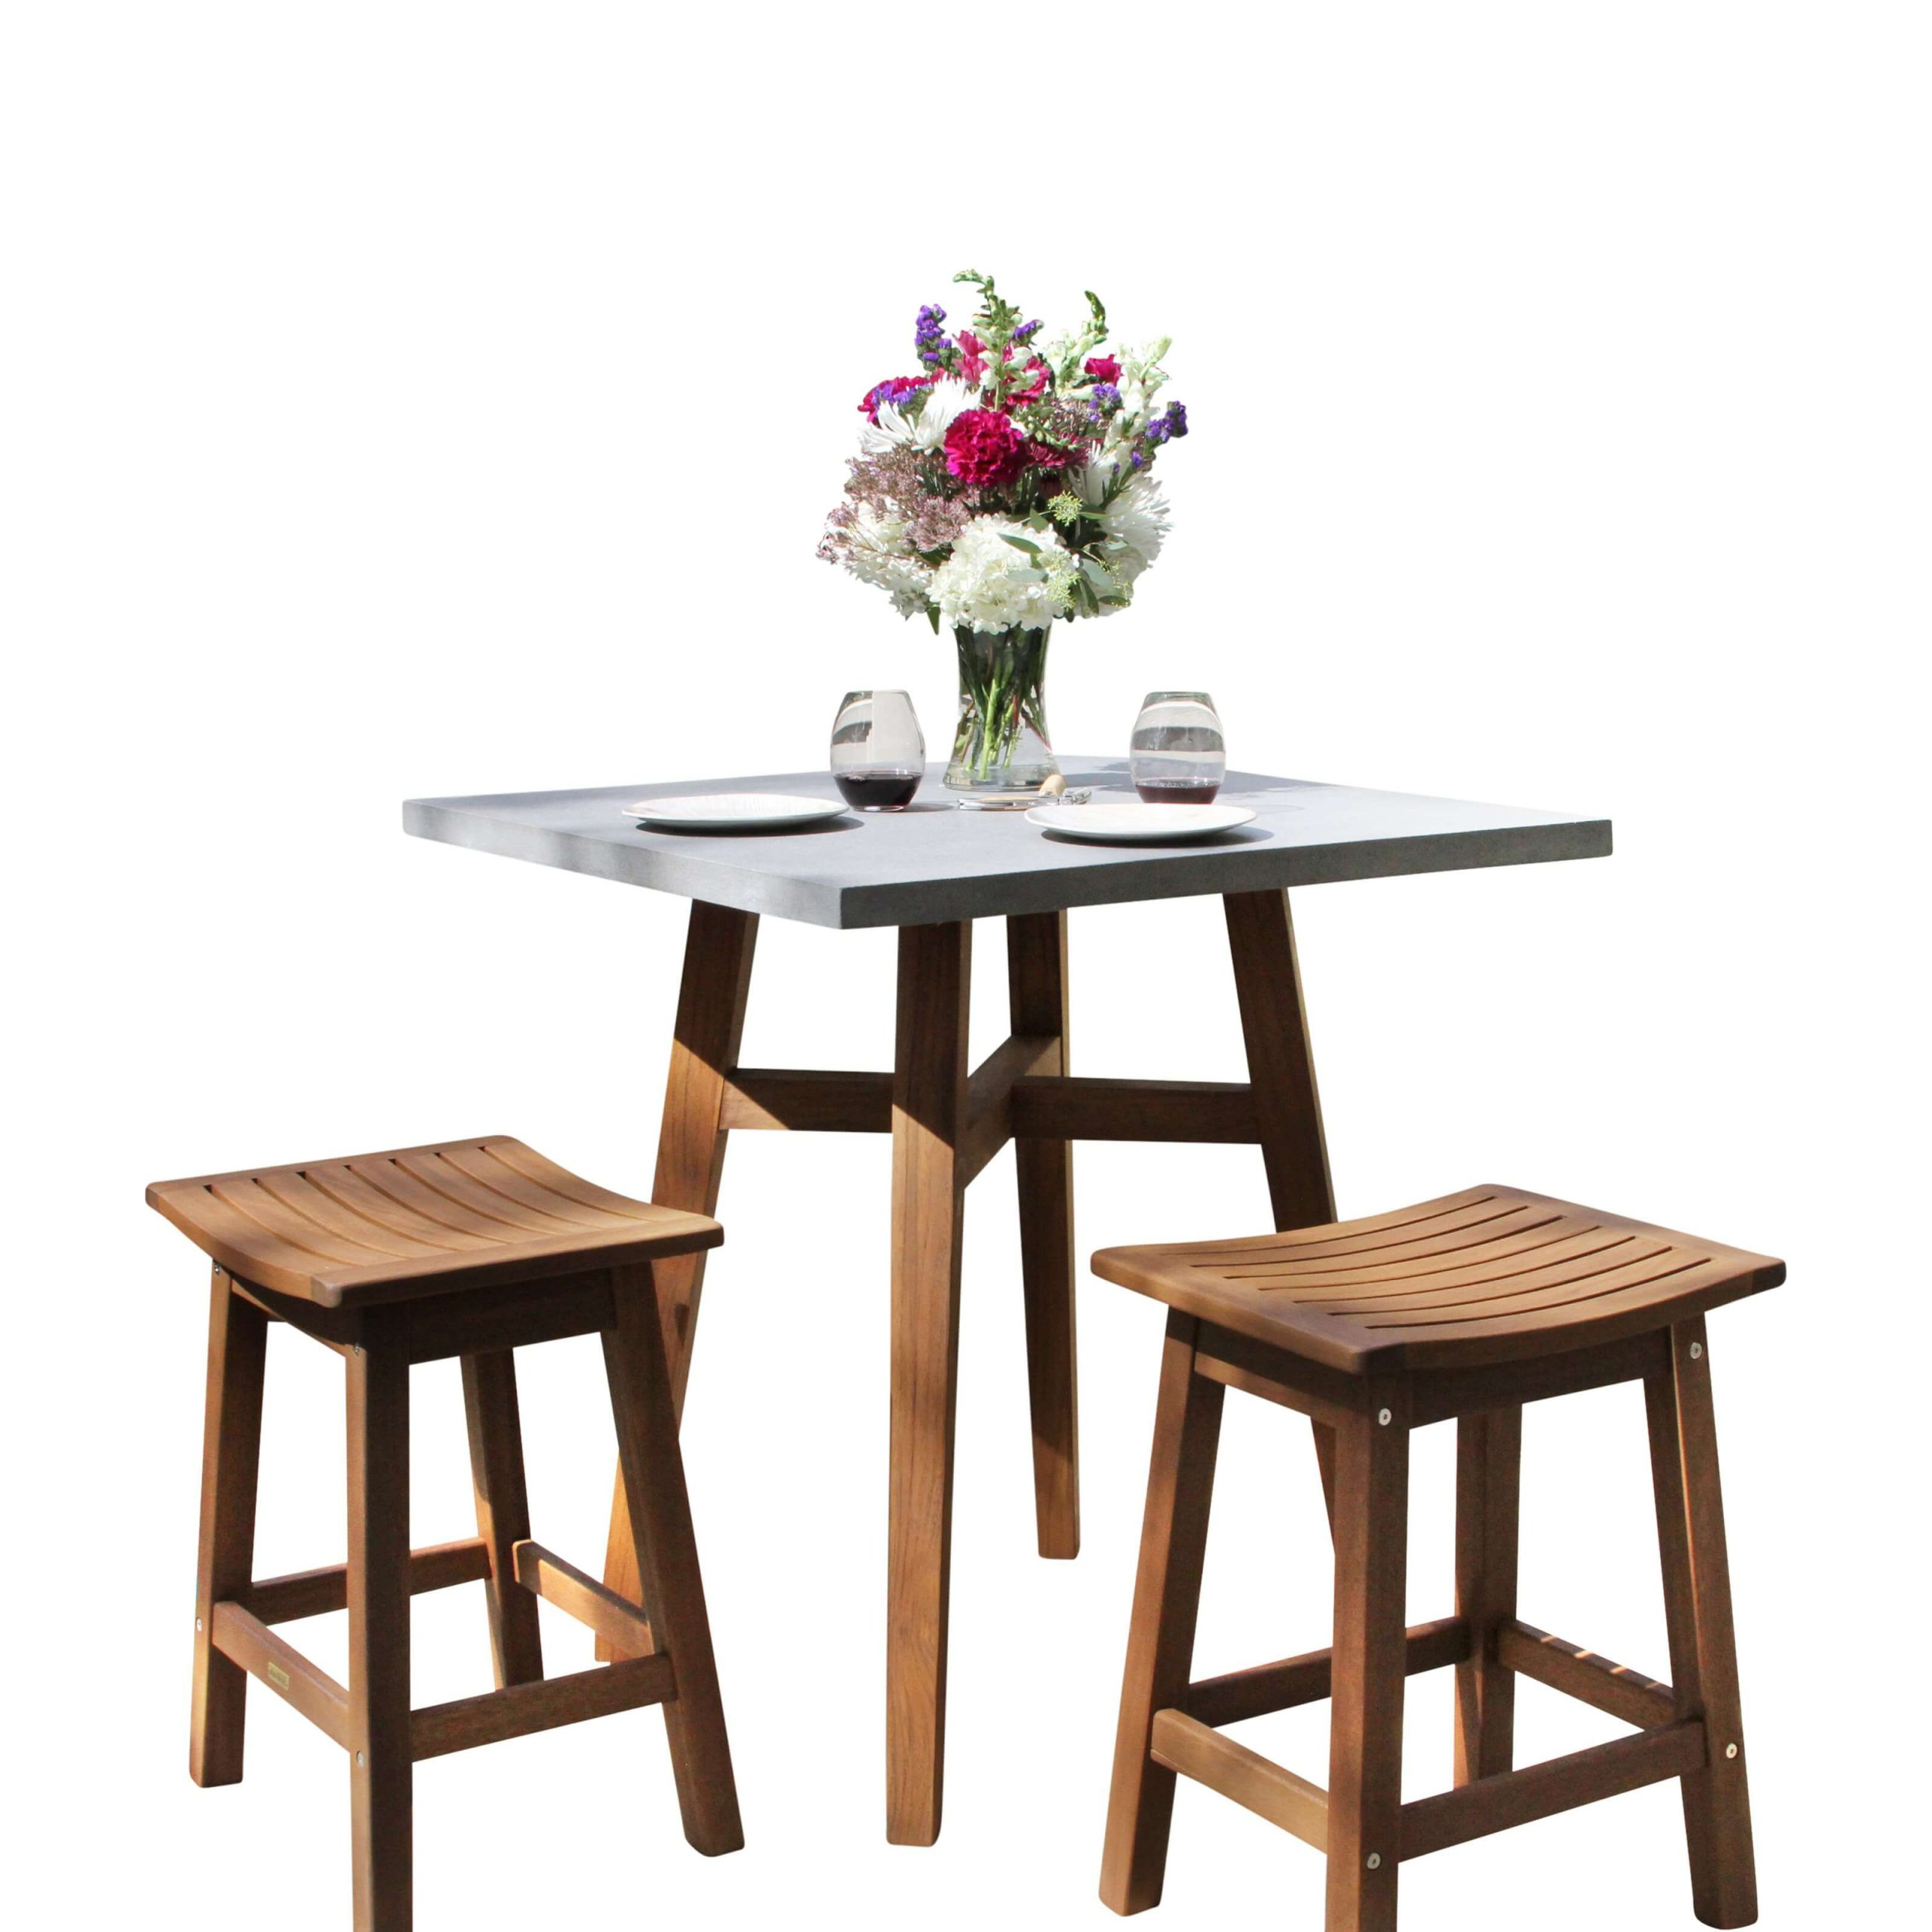 HIGH COUNTER DINING TABLE SET OUTDOOR FOR SMALL SPACE